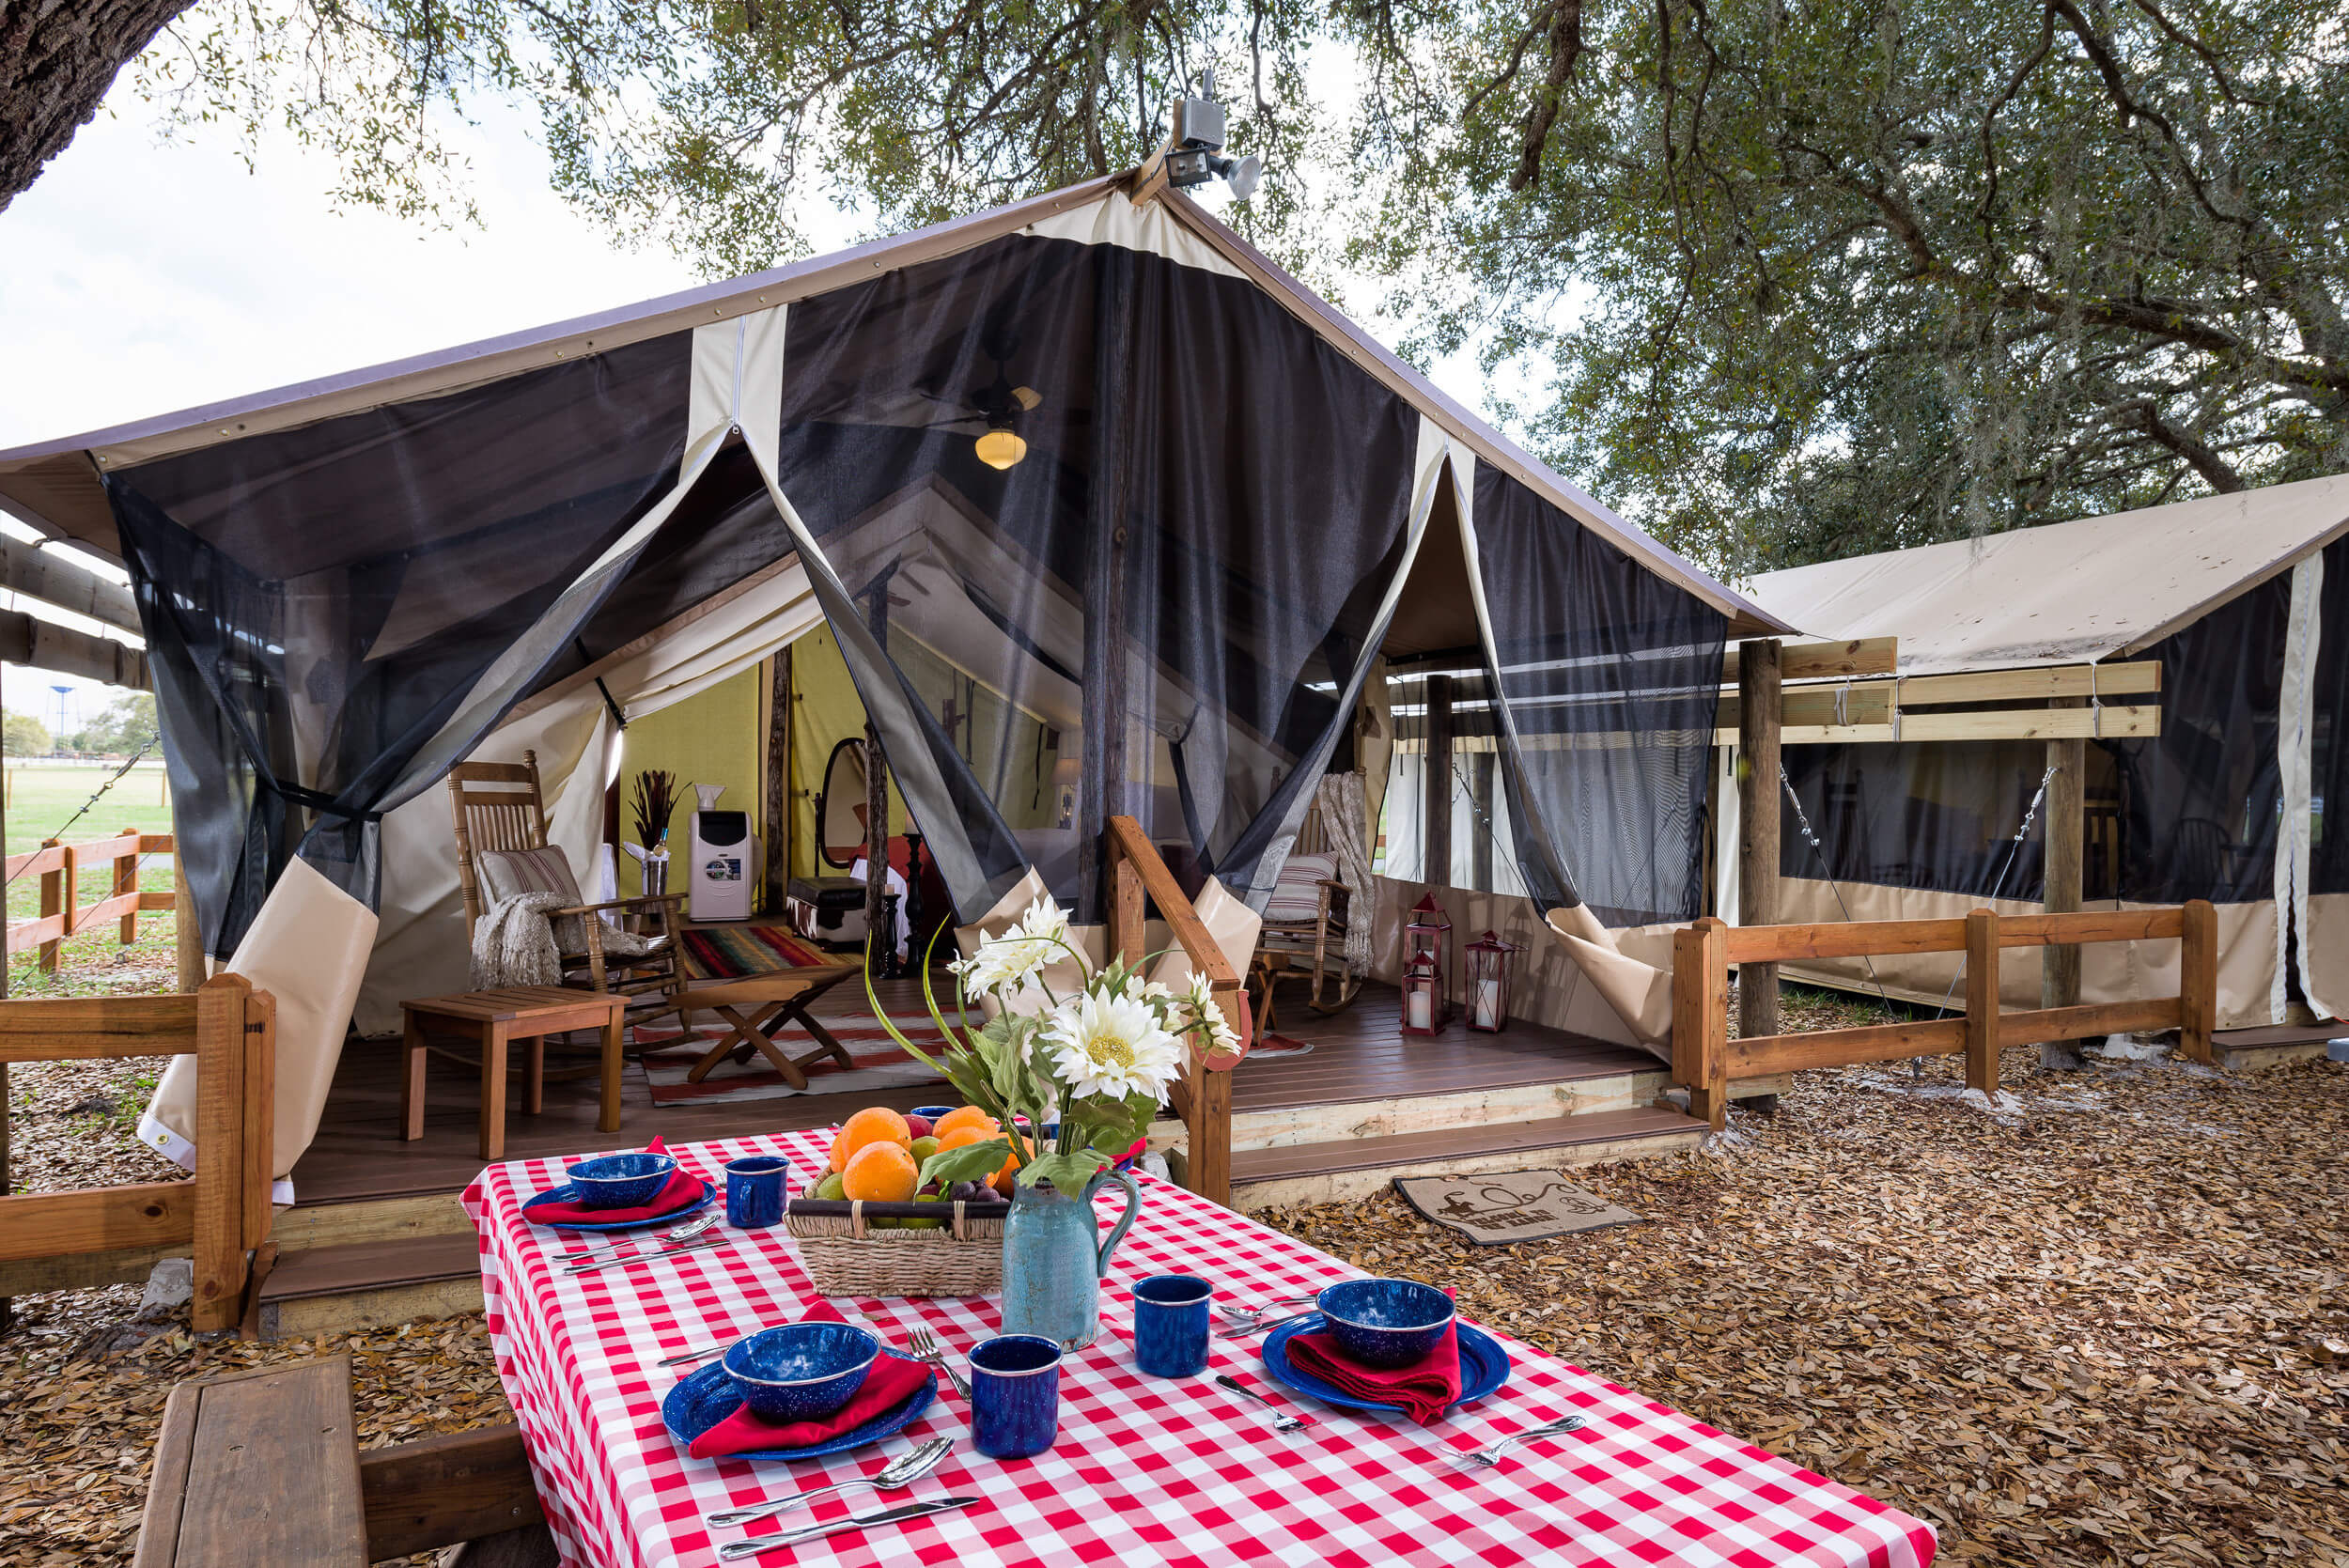 Picnic Table in front of Glamping Tent | Westgate River Ranch Resort & Rodeo